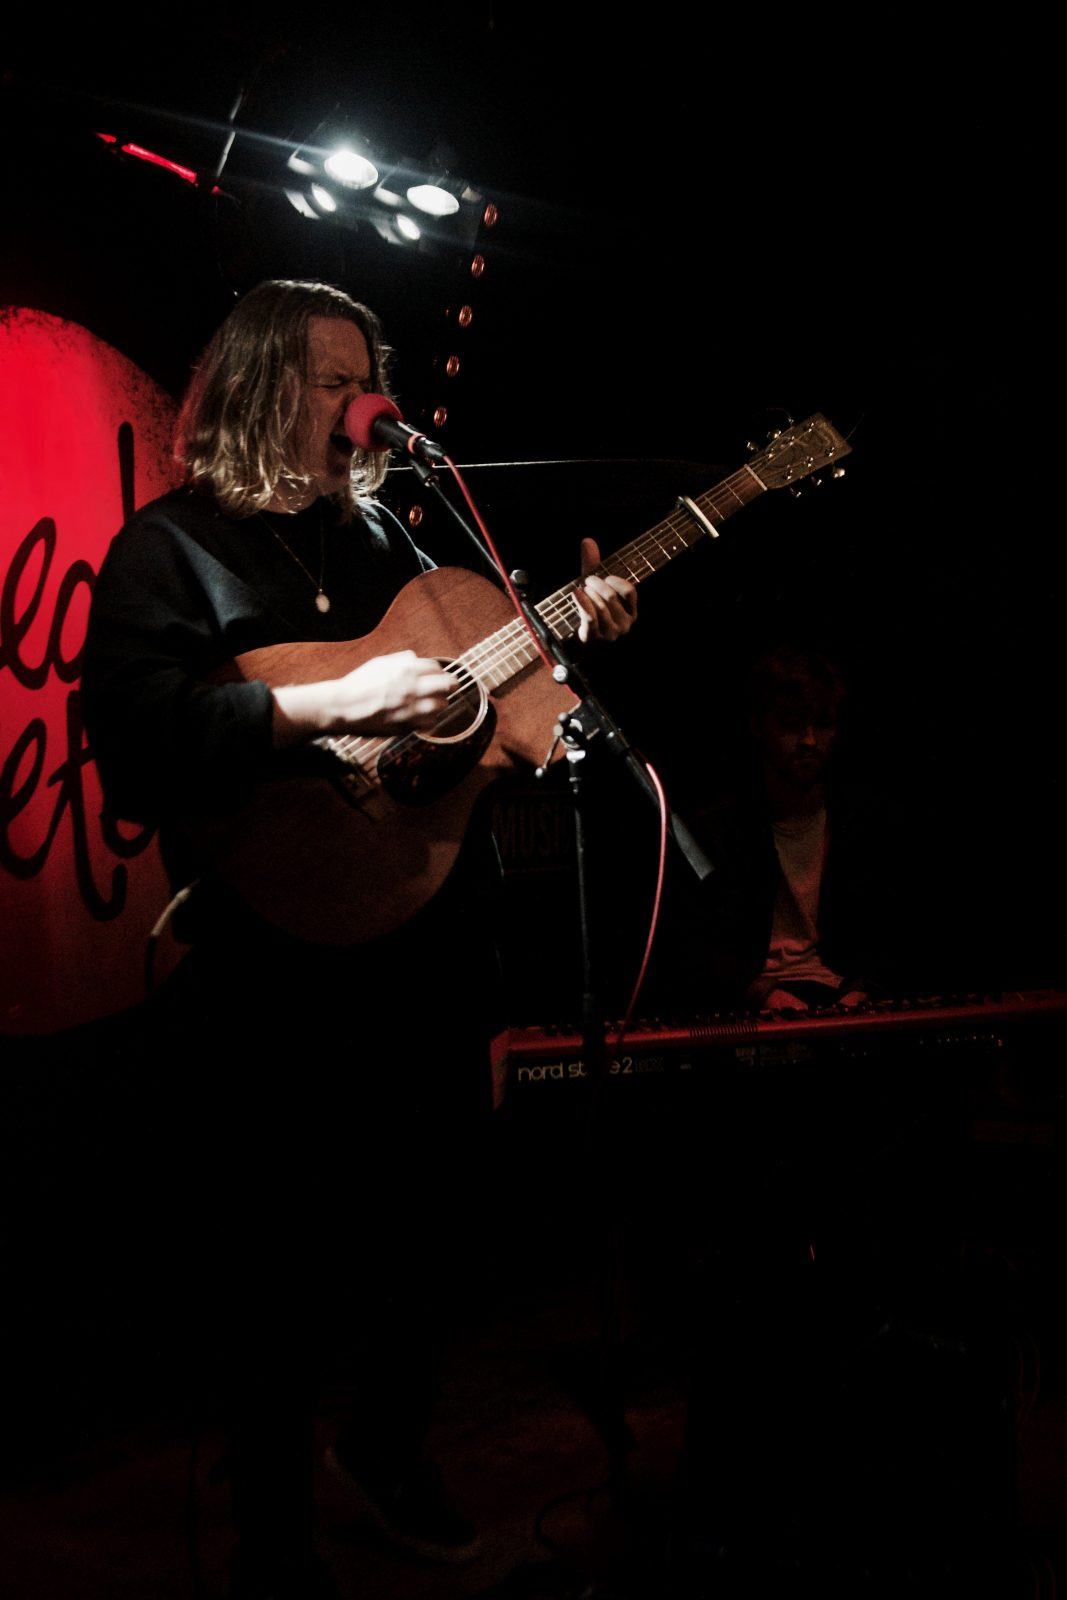 An Evening With... Lewis Capaldi